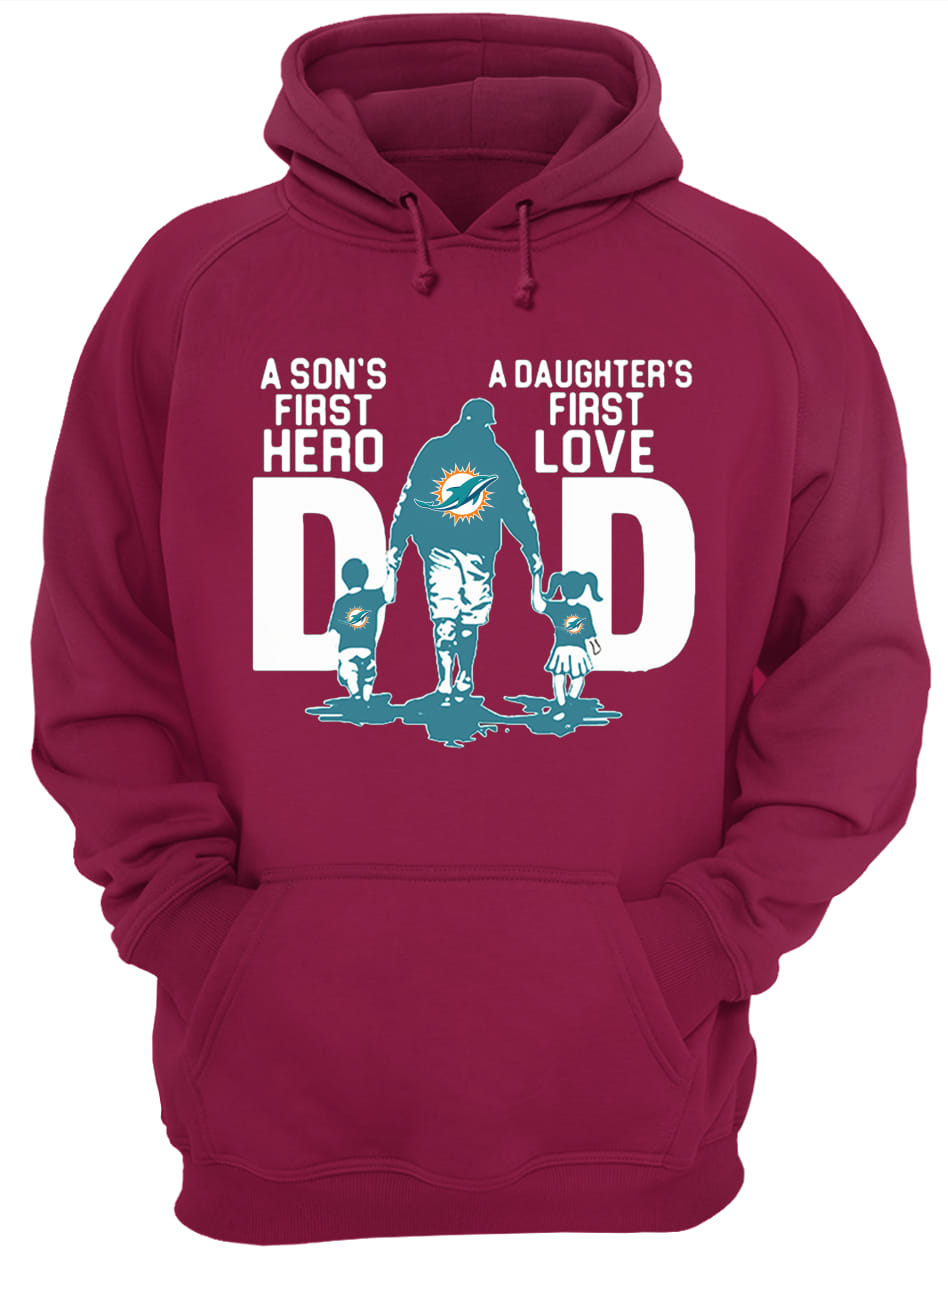 sports shoes 67153 5cd5b Miami dolphins dad a son's first hero a daughter's first love shirt and  hoodie